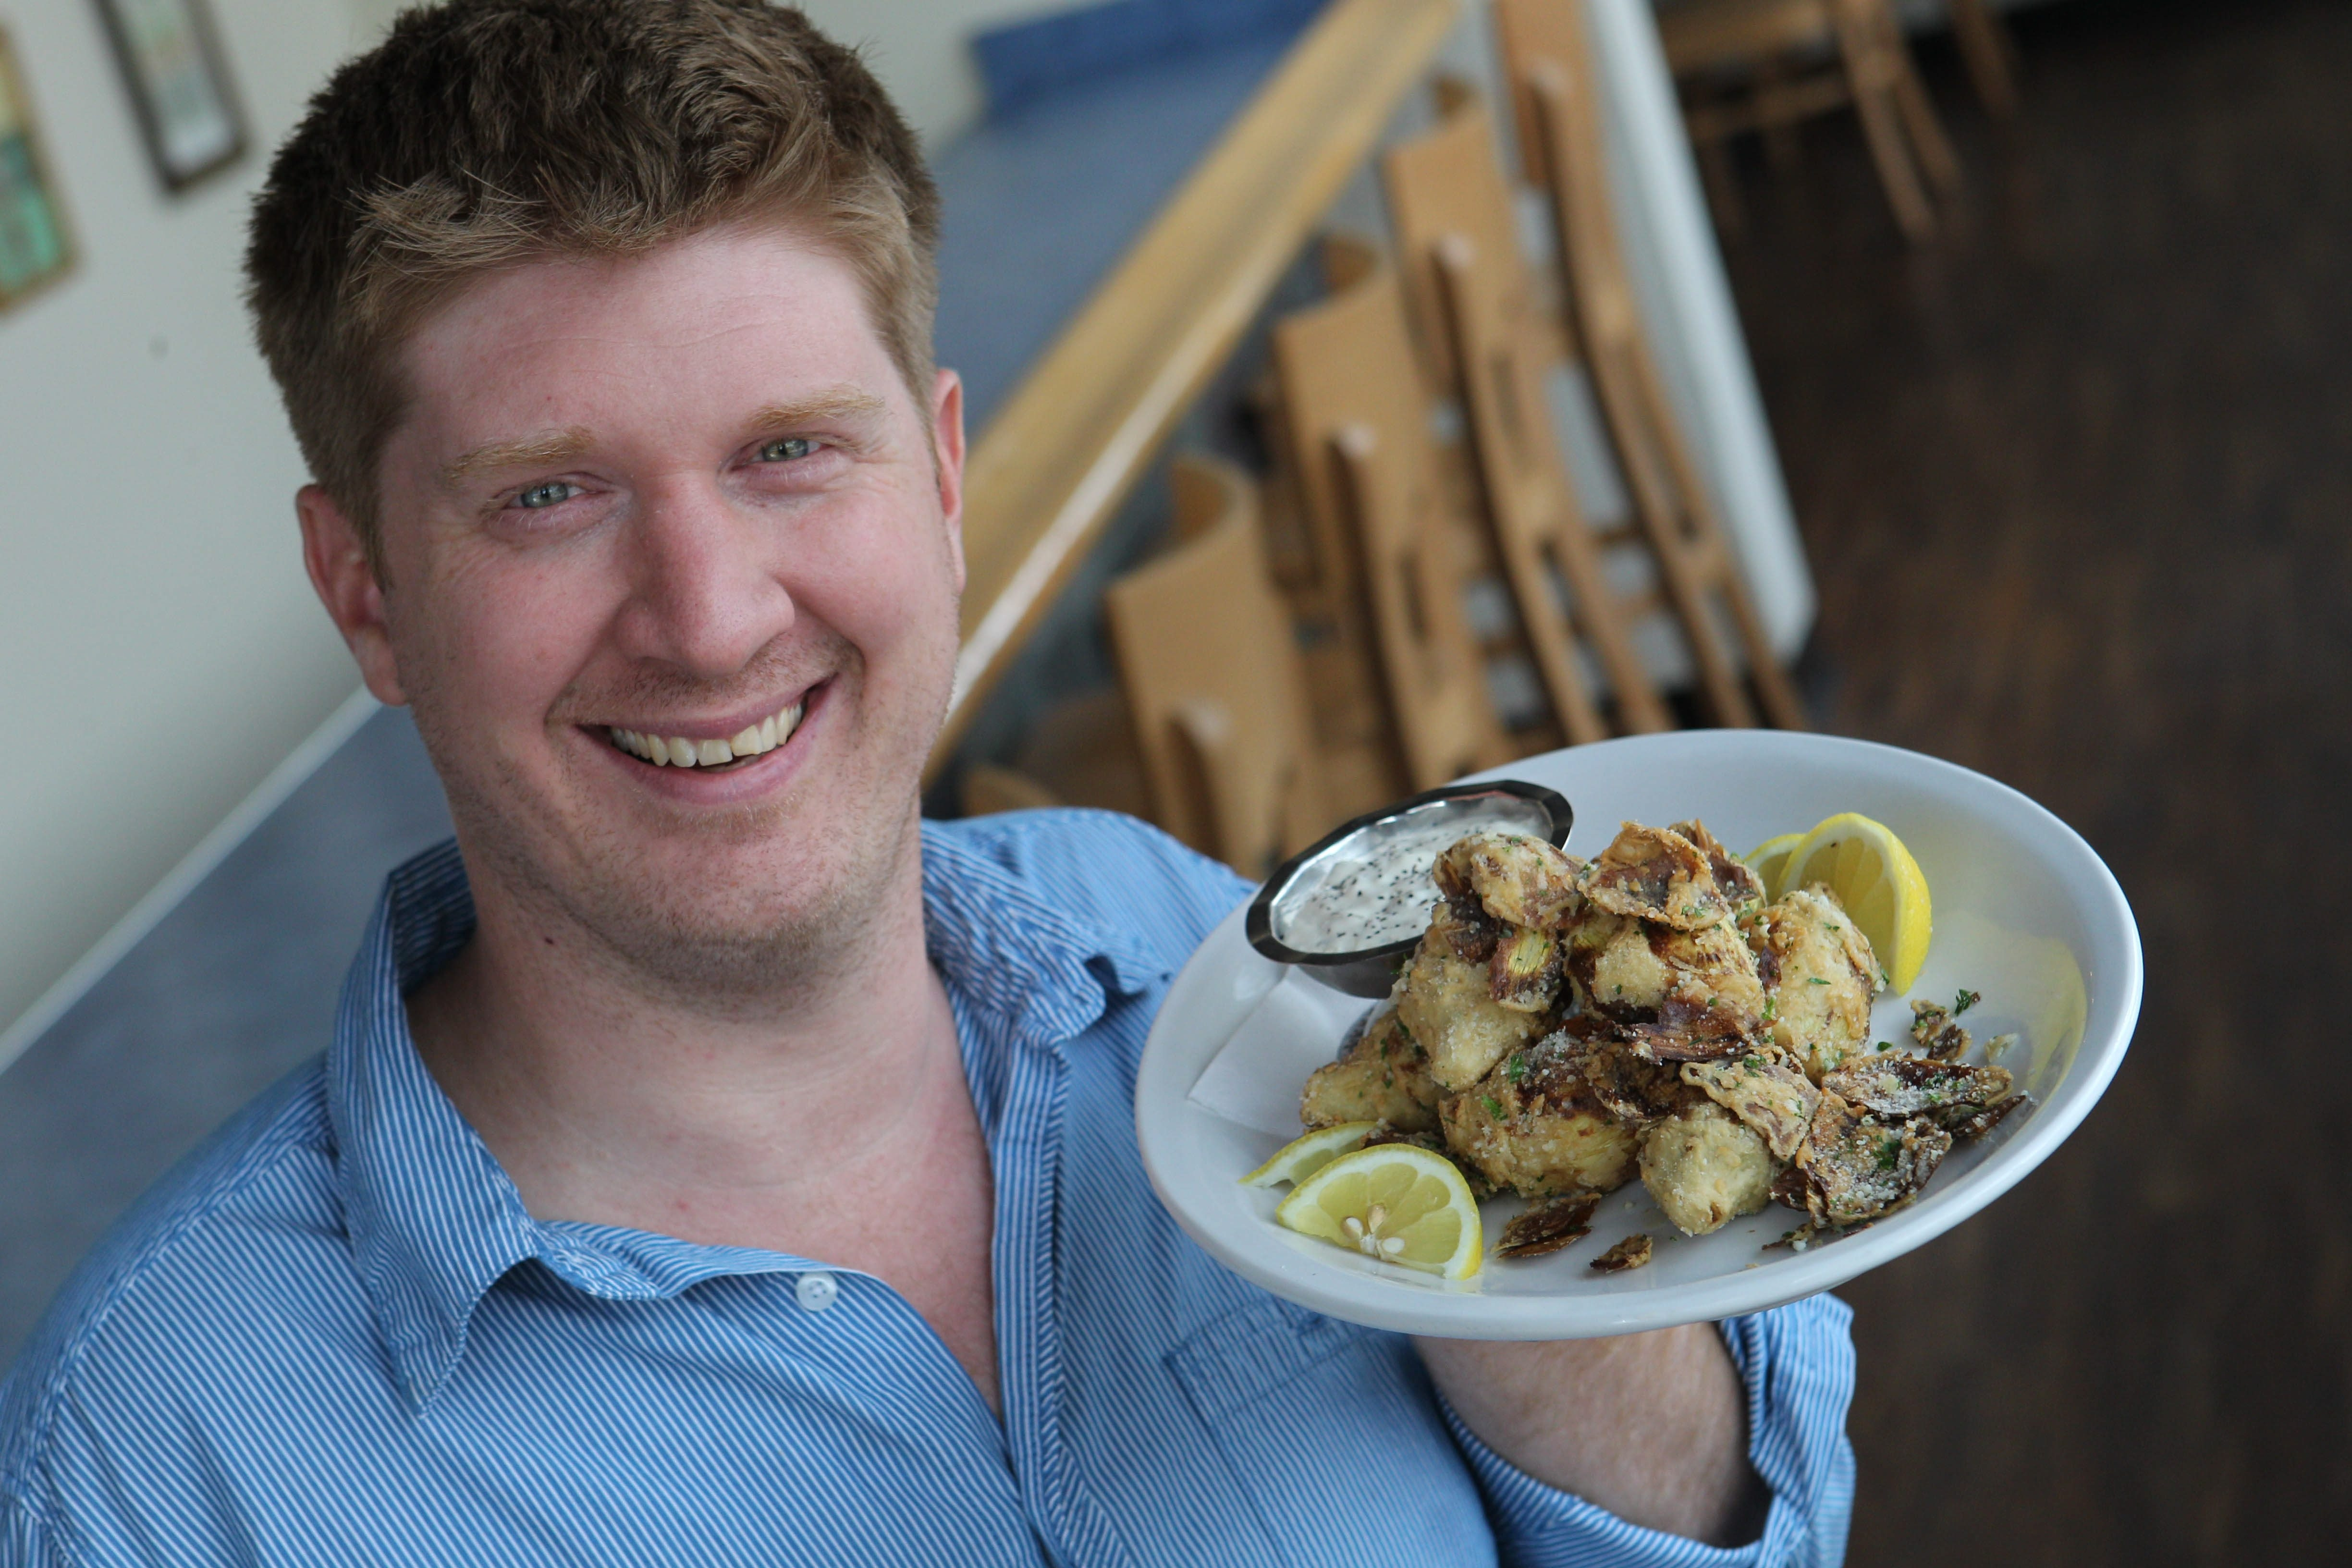 Madonna's owner Chris Connolly shows off the restaurant's fried artichoke hearts with parsley and romano cheese served with caper mayonnaise.